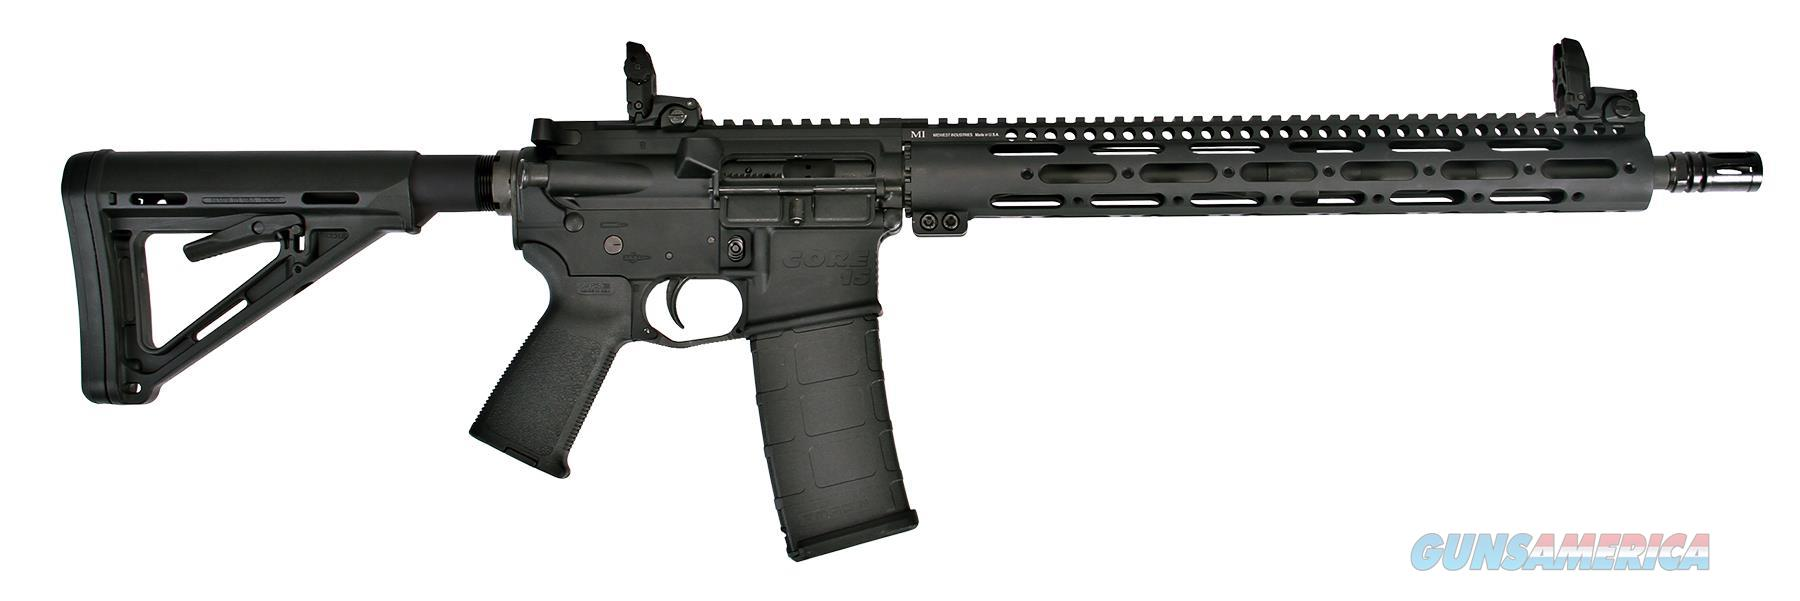 "CORE 15 10661 TAC III M4 SA 223/5.56 16"" 30+1 BLK 6-POS COLLAPSIBLE STK BLACK 10611  Guns > Rifles > AR-15 Rifles - Small Manufacturers > Complete Rifle"